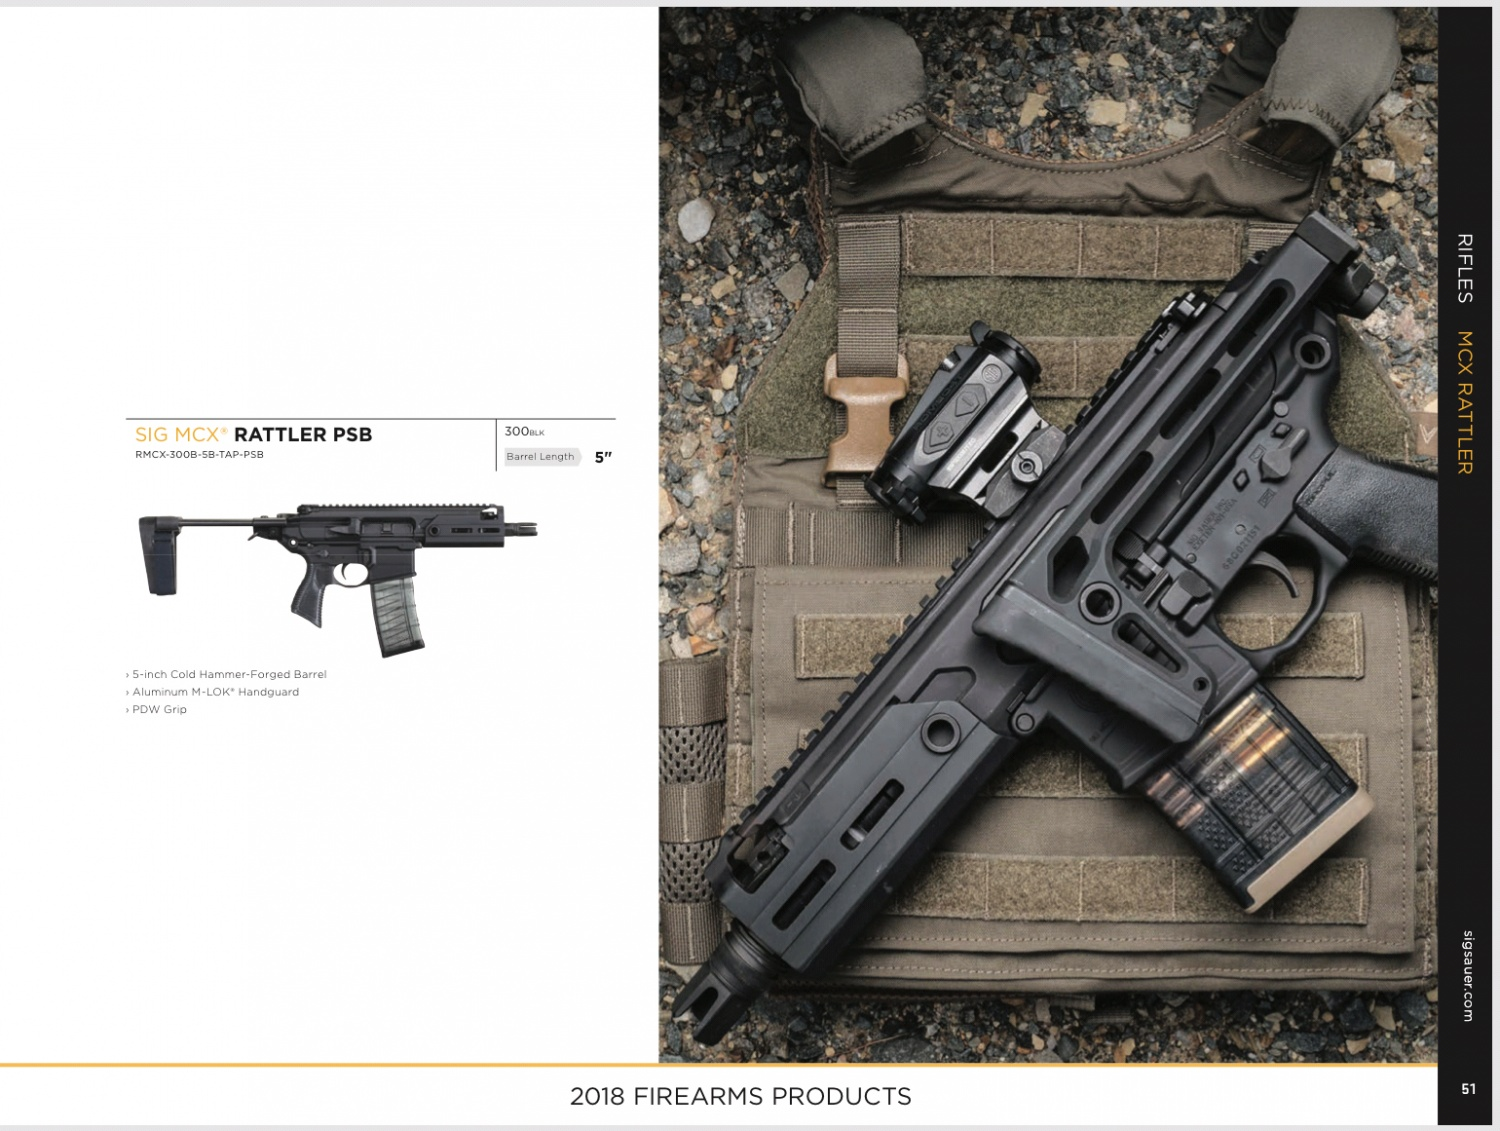 JUST OUT: The Sig Sauer 2018 Catalog Featuring the P320 M17 -The